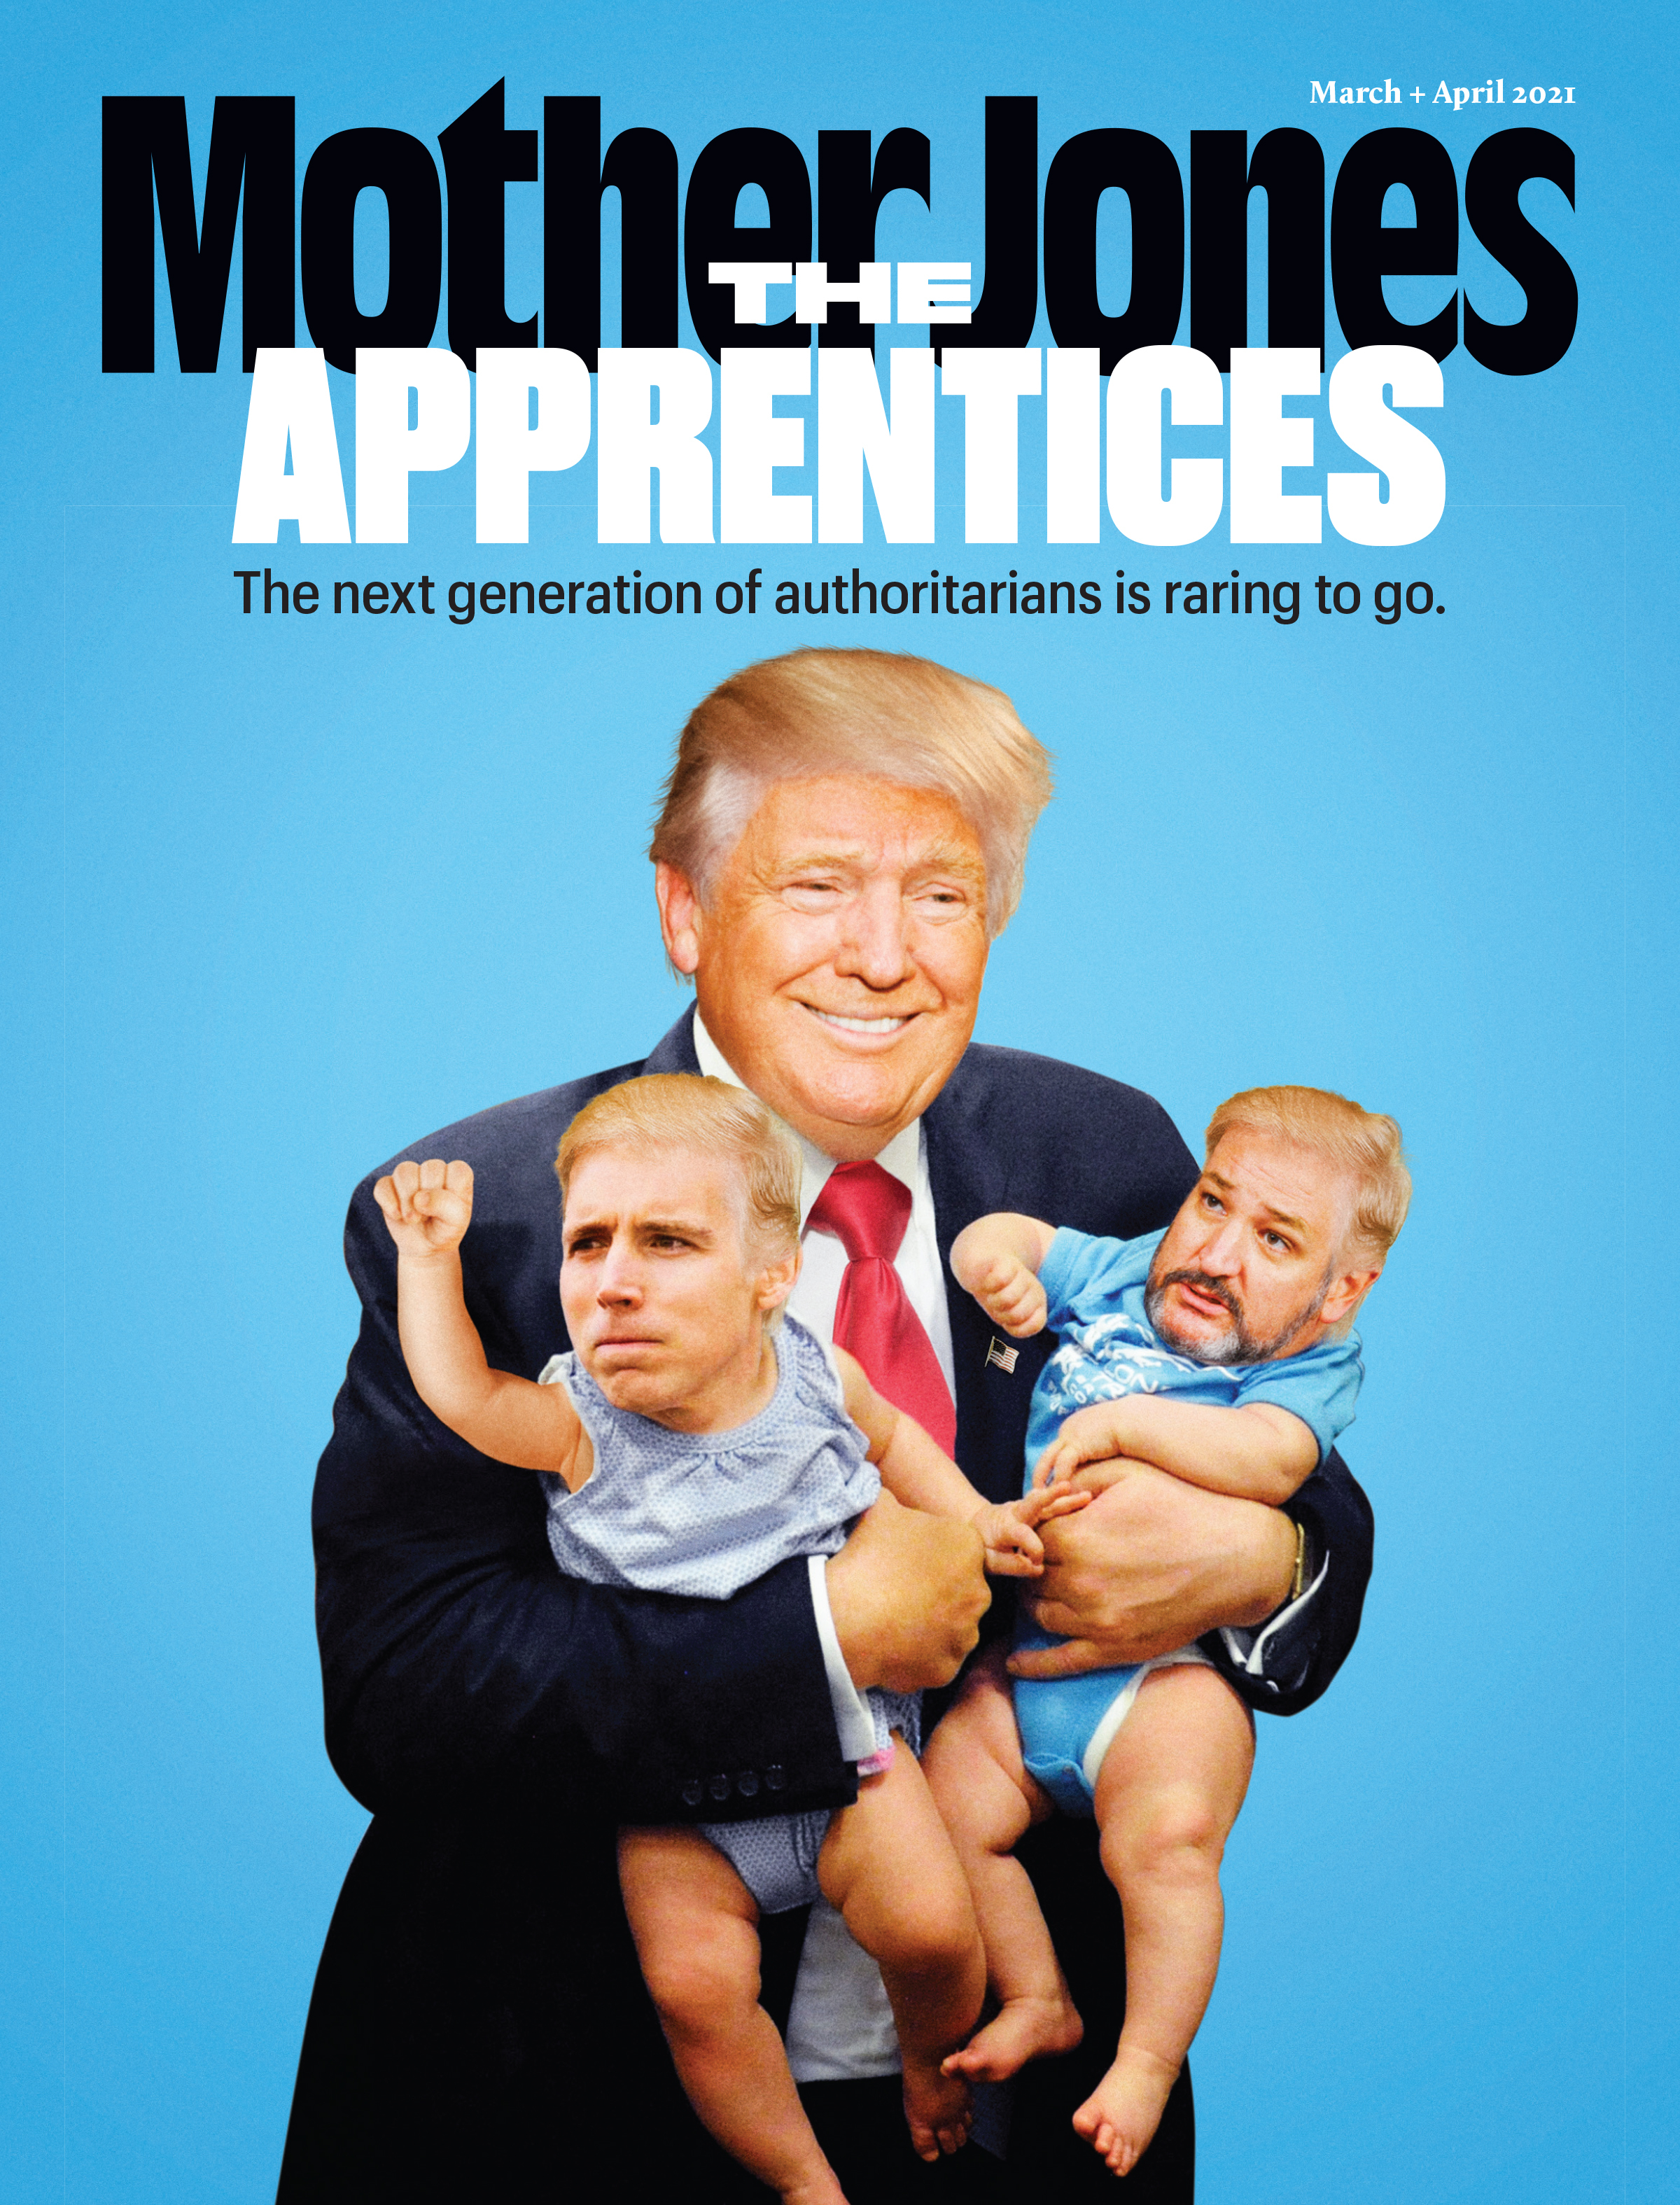 Mother Jones Magazine Cover : September + October 2020